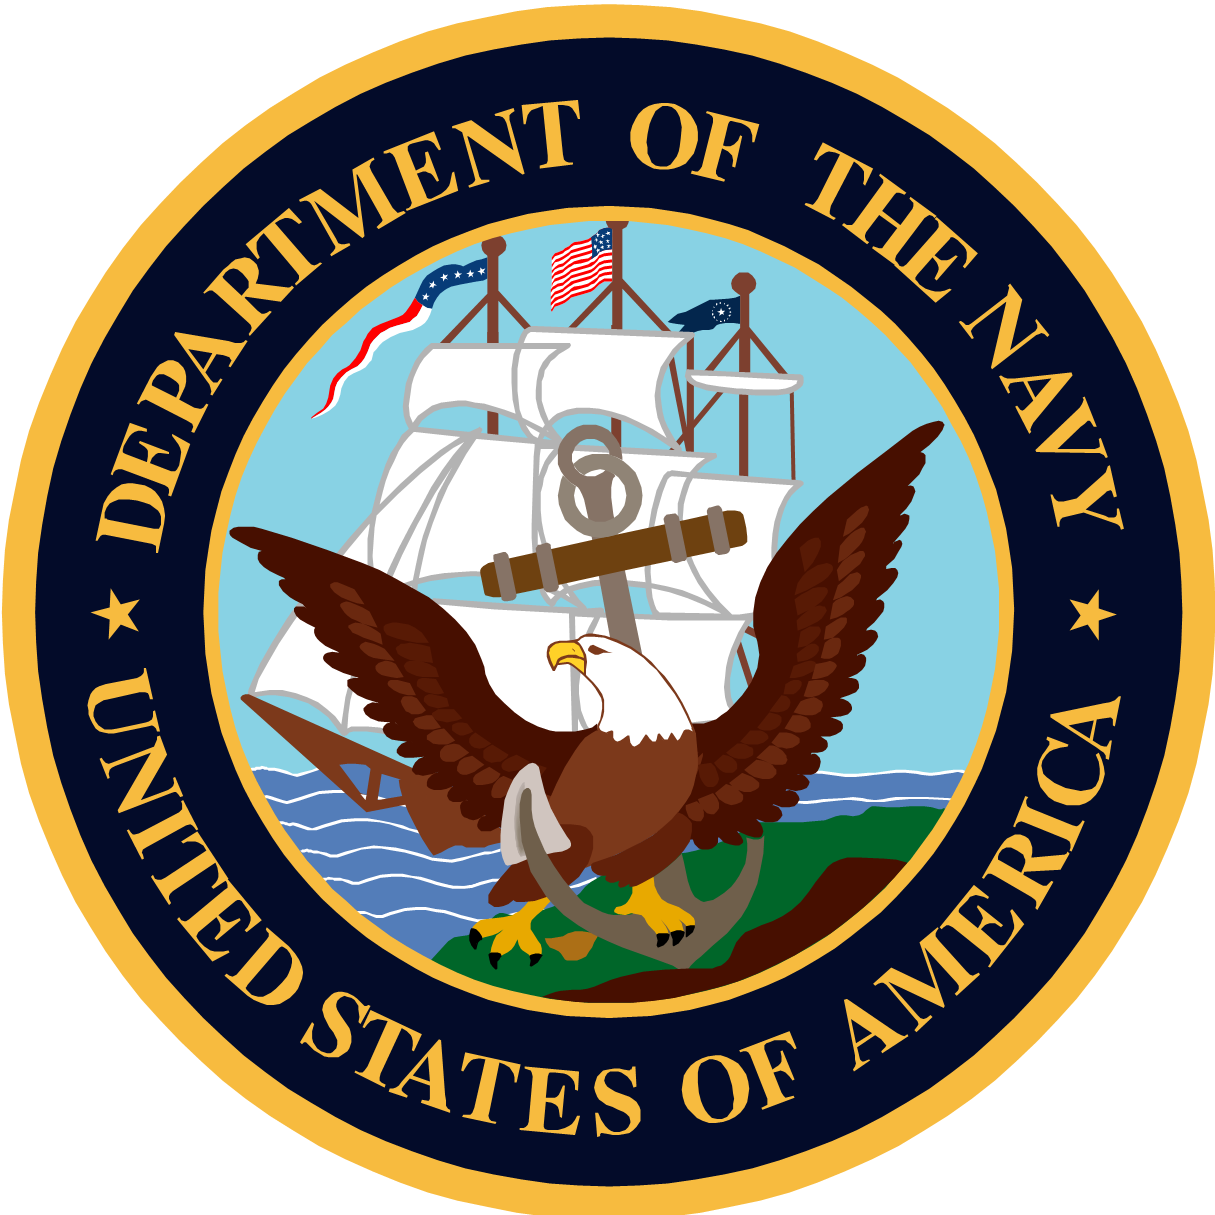 Maritime Maunder: HAPPY BIRTHDAY U.S.NAVY